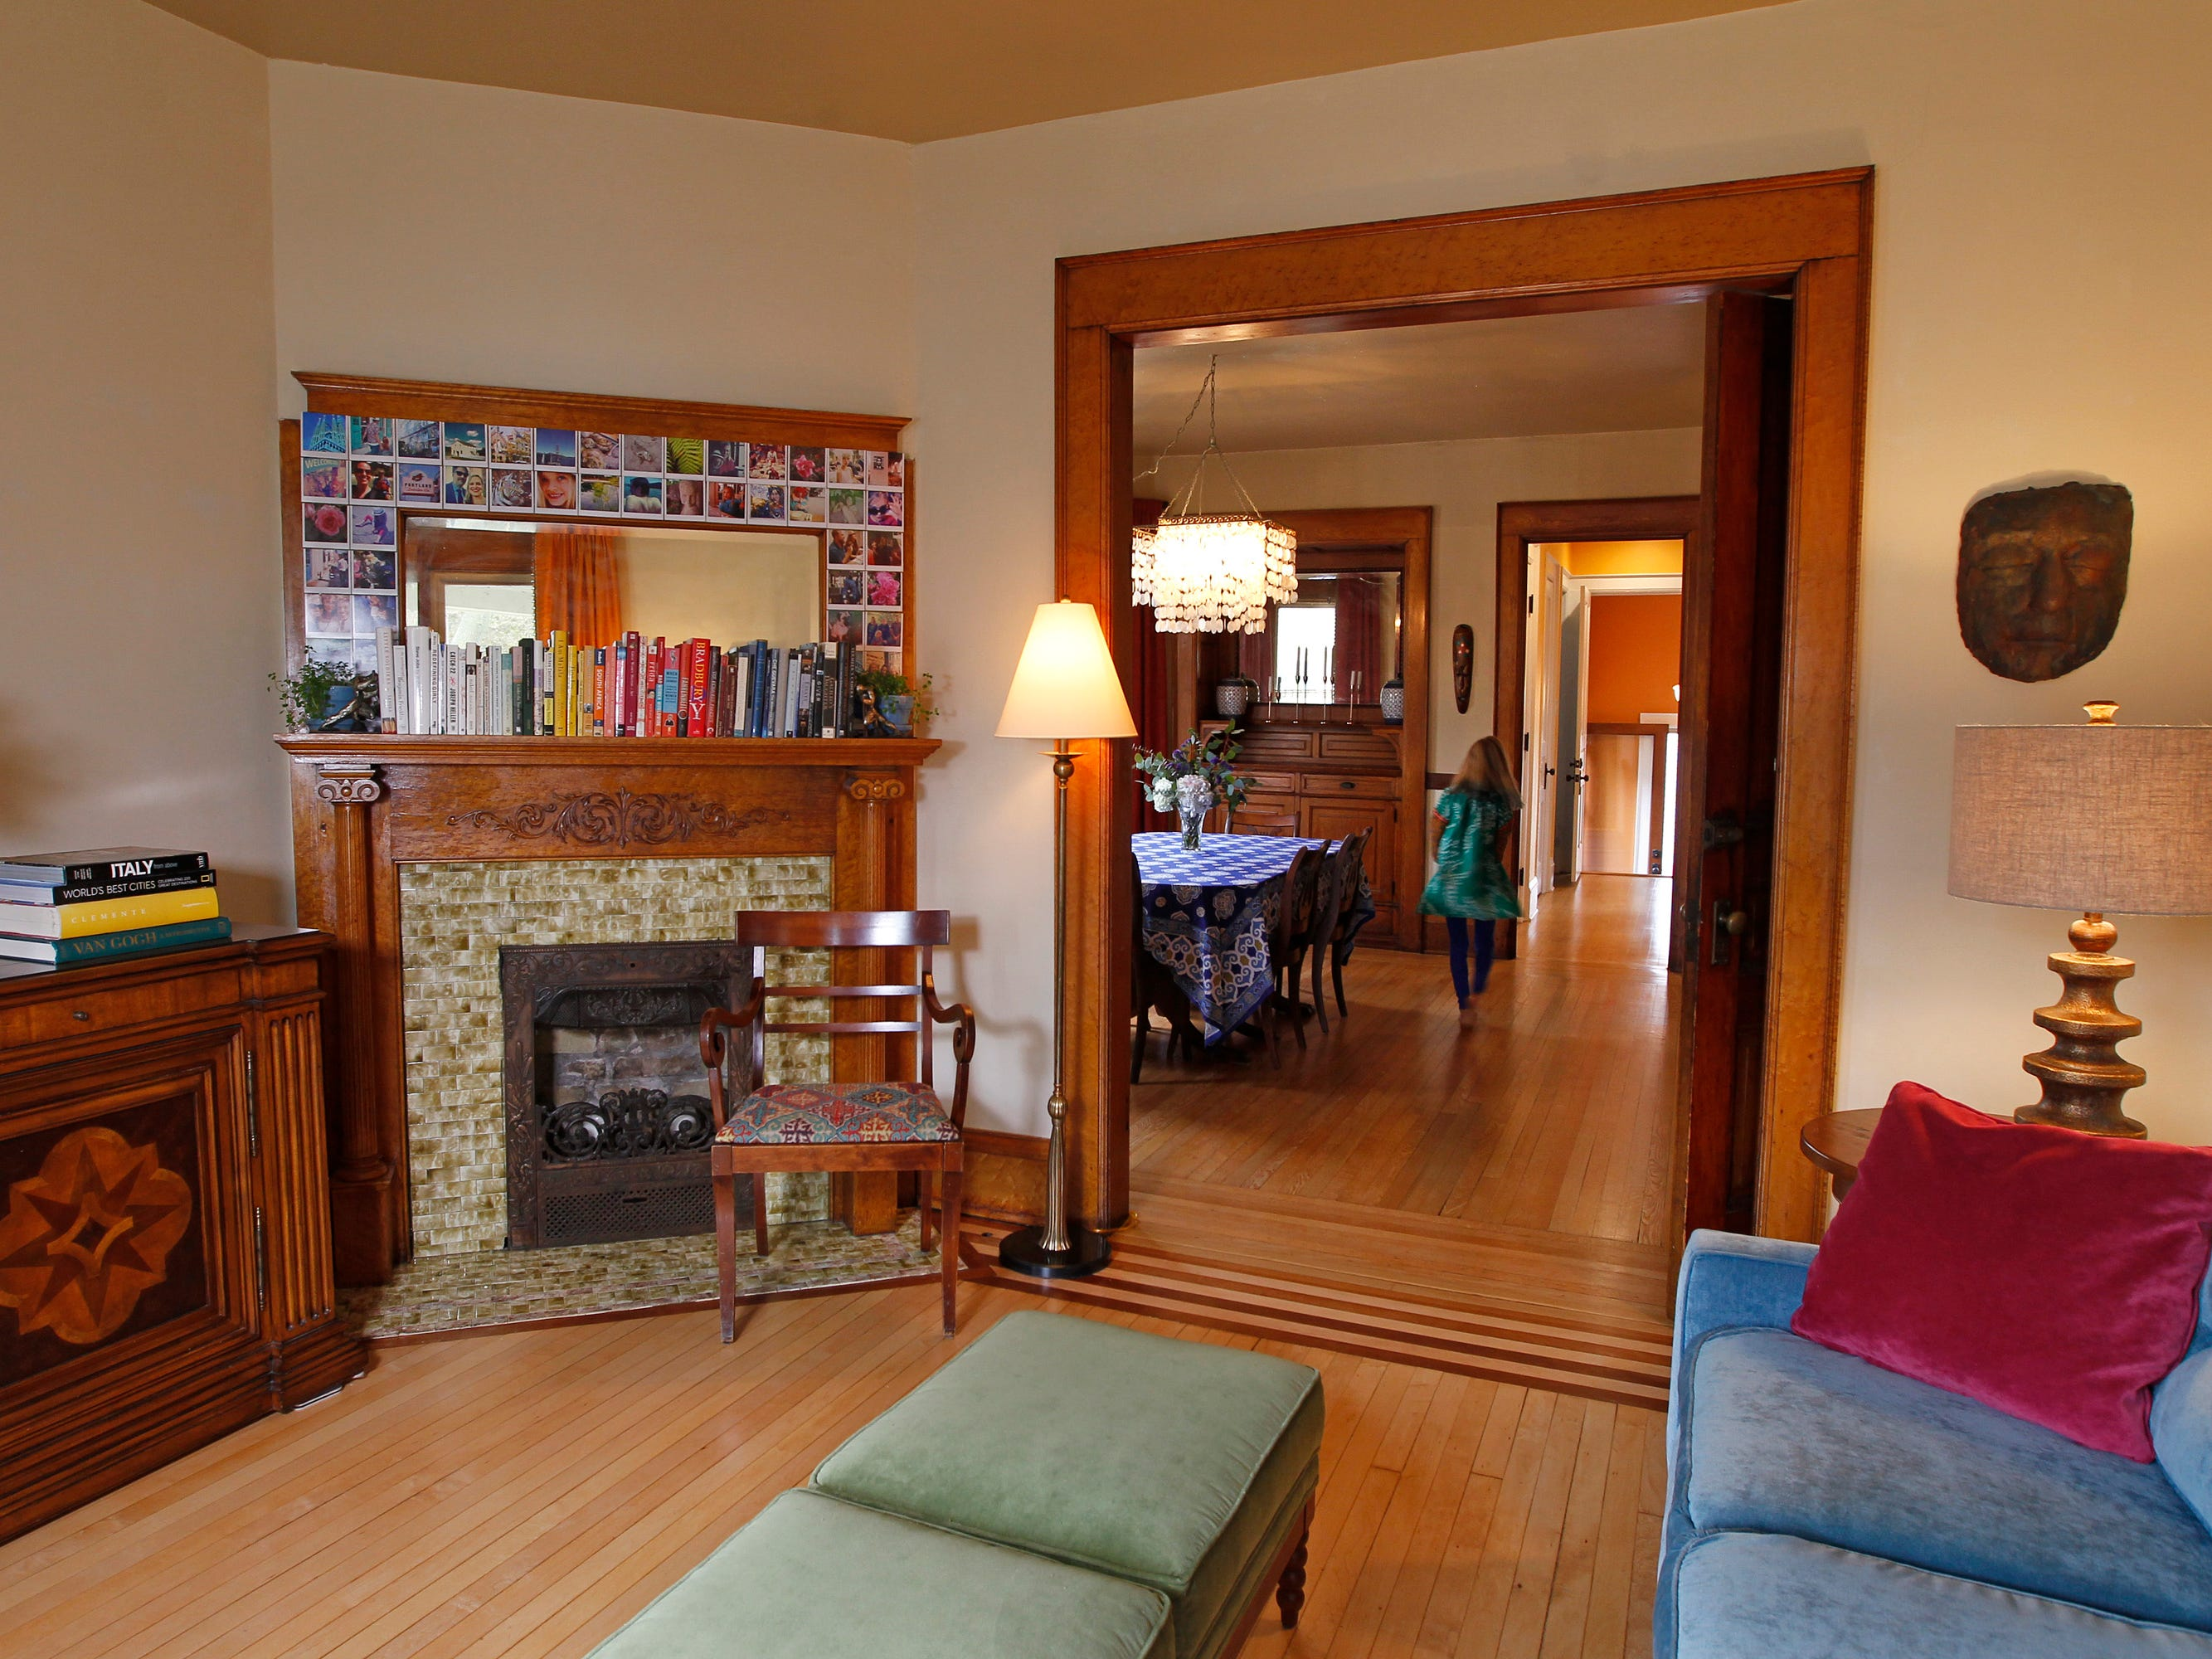 Elena, daughter of Kevin Kriehn and Mara Duckens, walks through the dining room. In the foreground is the living room with colorful furnishings. The fireplace mirror has been decorated with family photos scaled to fit the area.